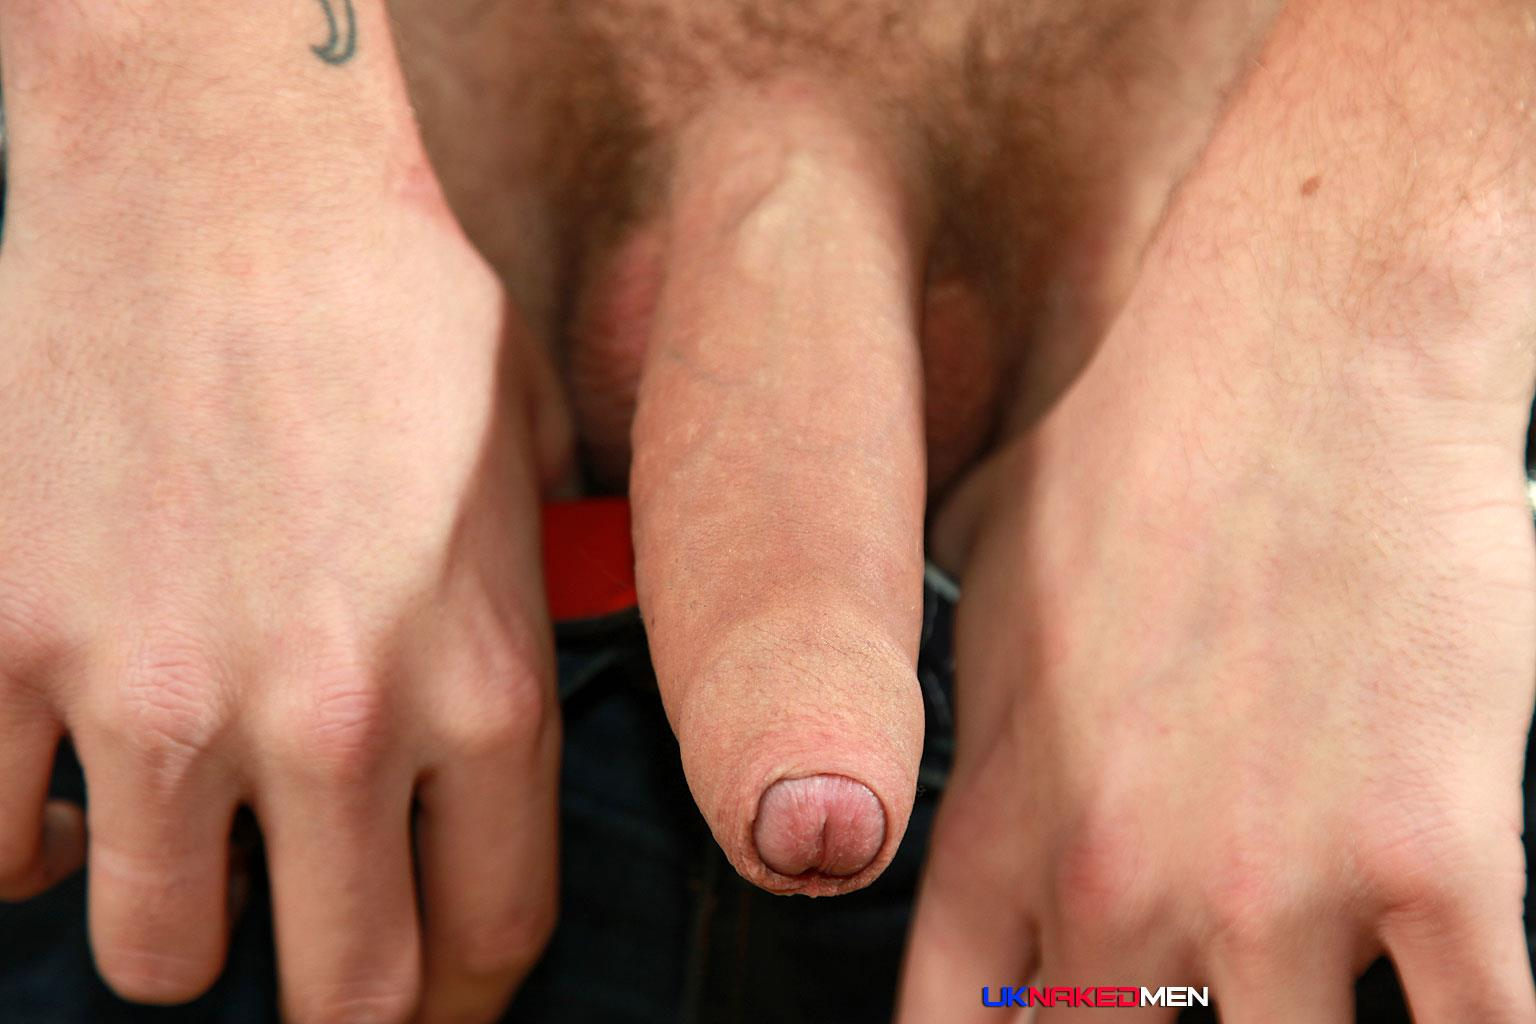 UK-Naked-Men-Dan-Stone-British-Guy-Naked-With-Big-Uncut-Cock-Amateur-Gay-Porn-03 Bisexual British Guy Dan Stone Jerking Off His Big Uncut Cock